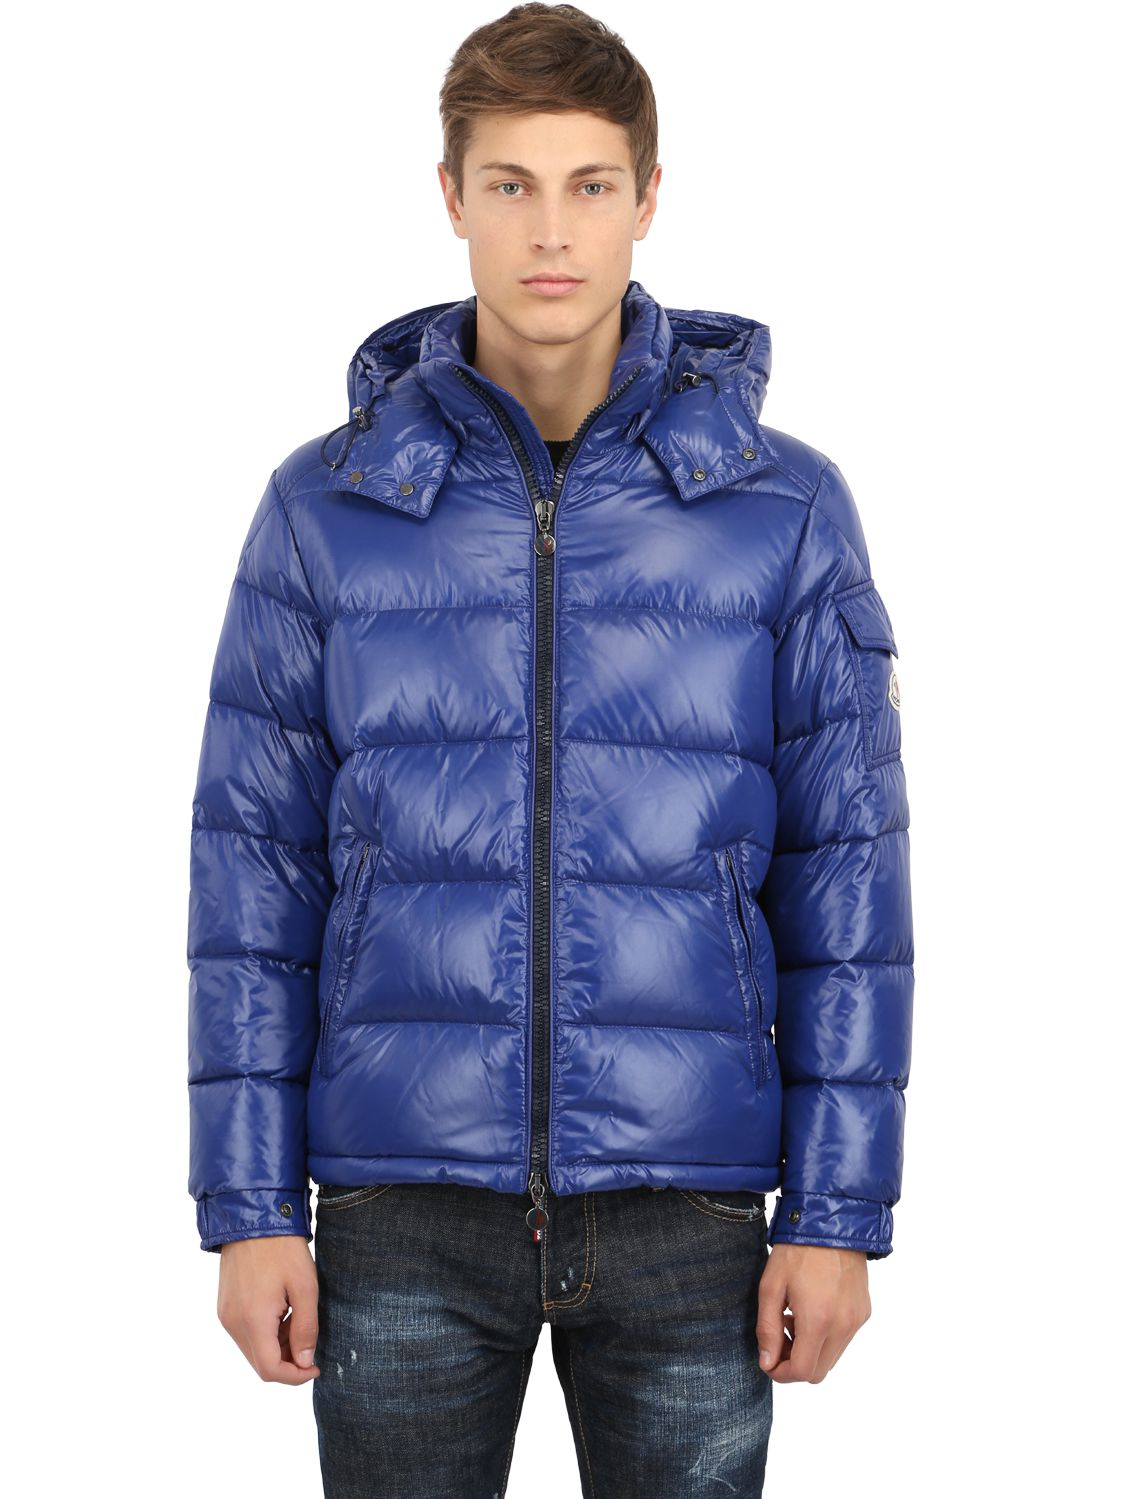 moncler mens down jackets navy blue -